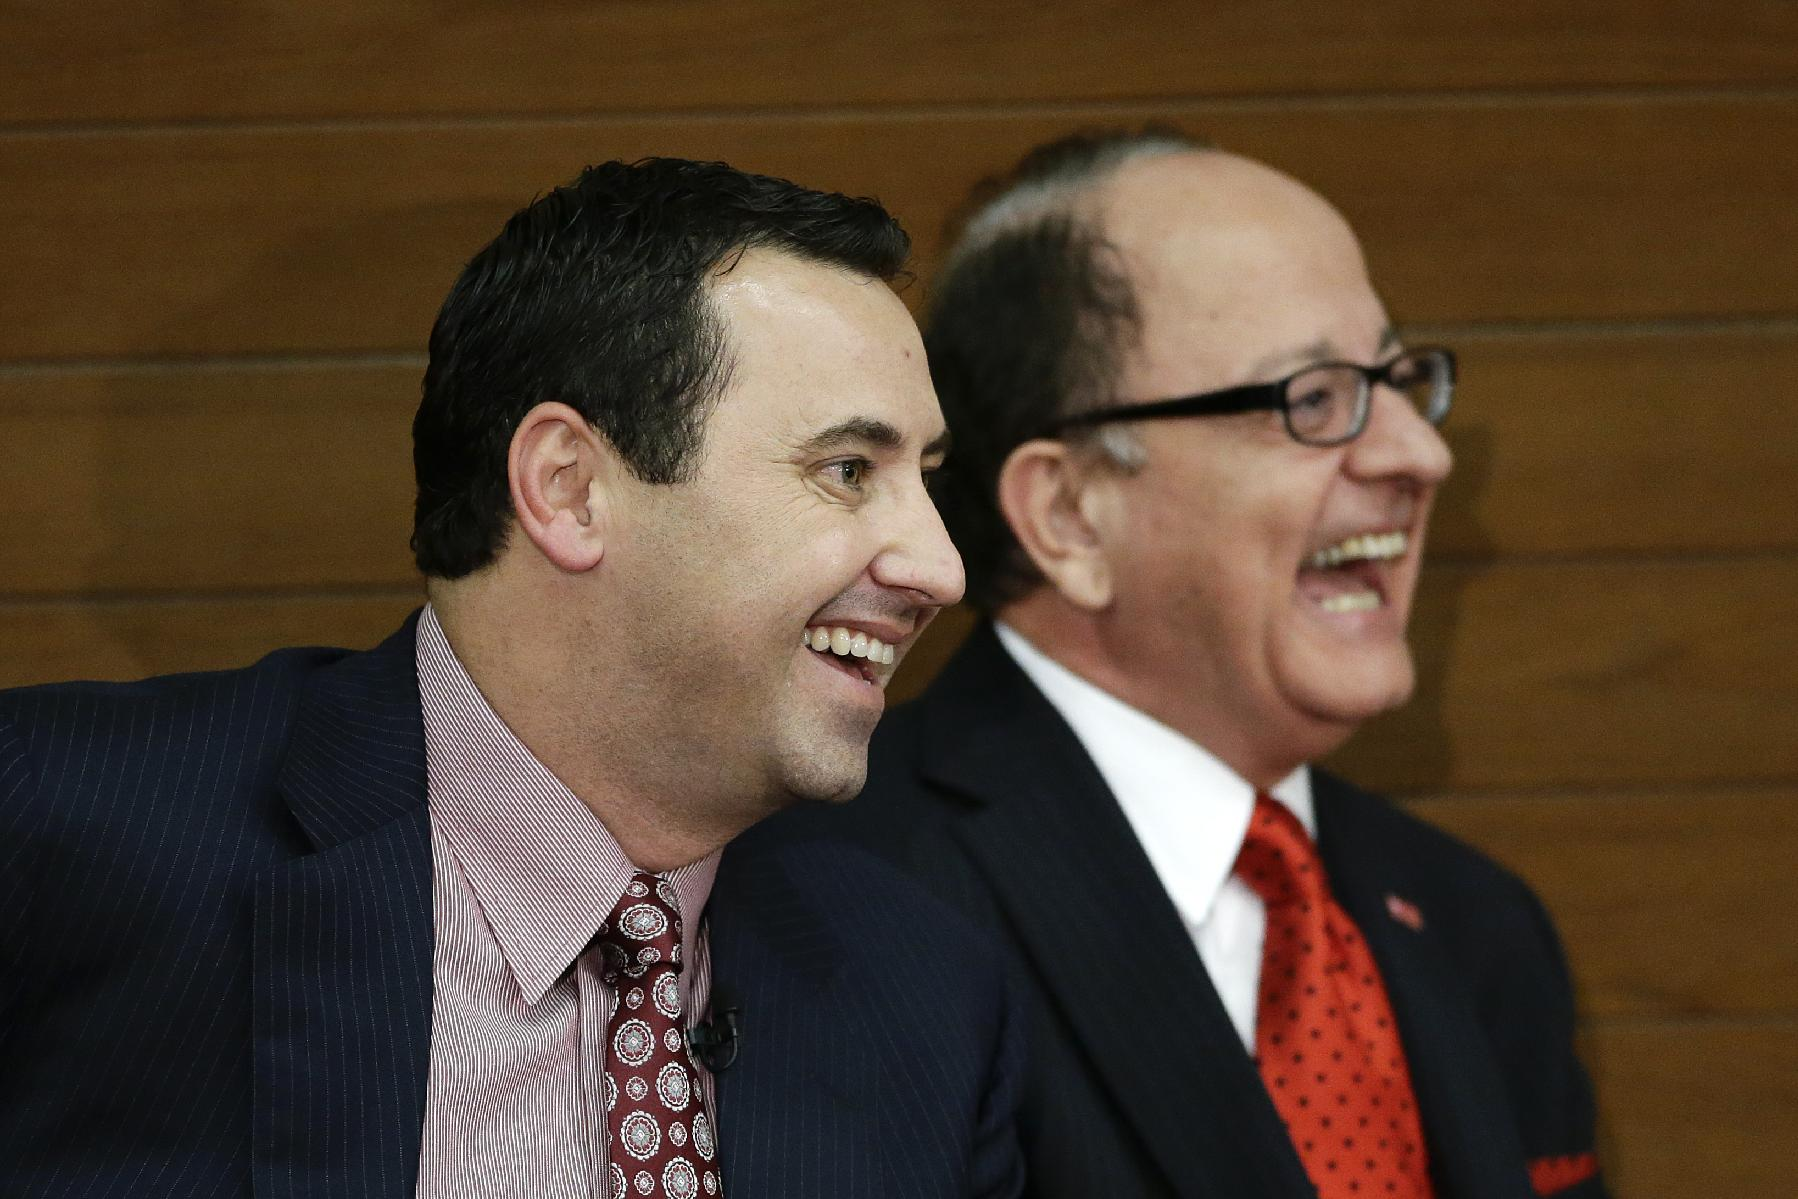 New Southern California football head coach Steve Sarkisian, left, and USC president, C. L. Max Nikias laugh during a news conference on Tuesday, Dec. 3, 2013, in Los Angeles. USC hired Sarkisian away from Washington on Monday, bringing back the former Trojans offensive coordinator to his native Los Angeles area and the storied program where he thrived as Pete Carroll's assistant